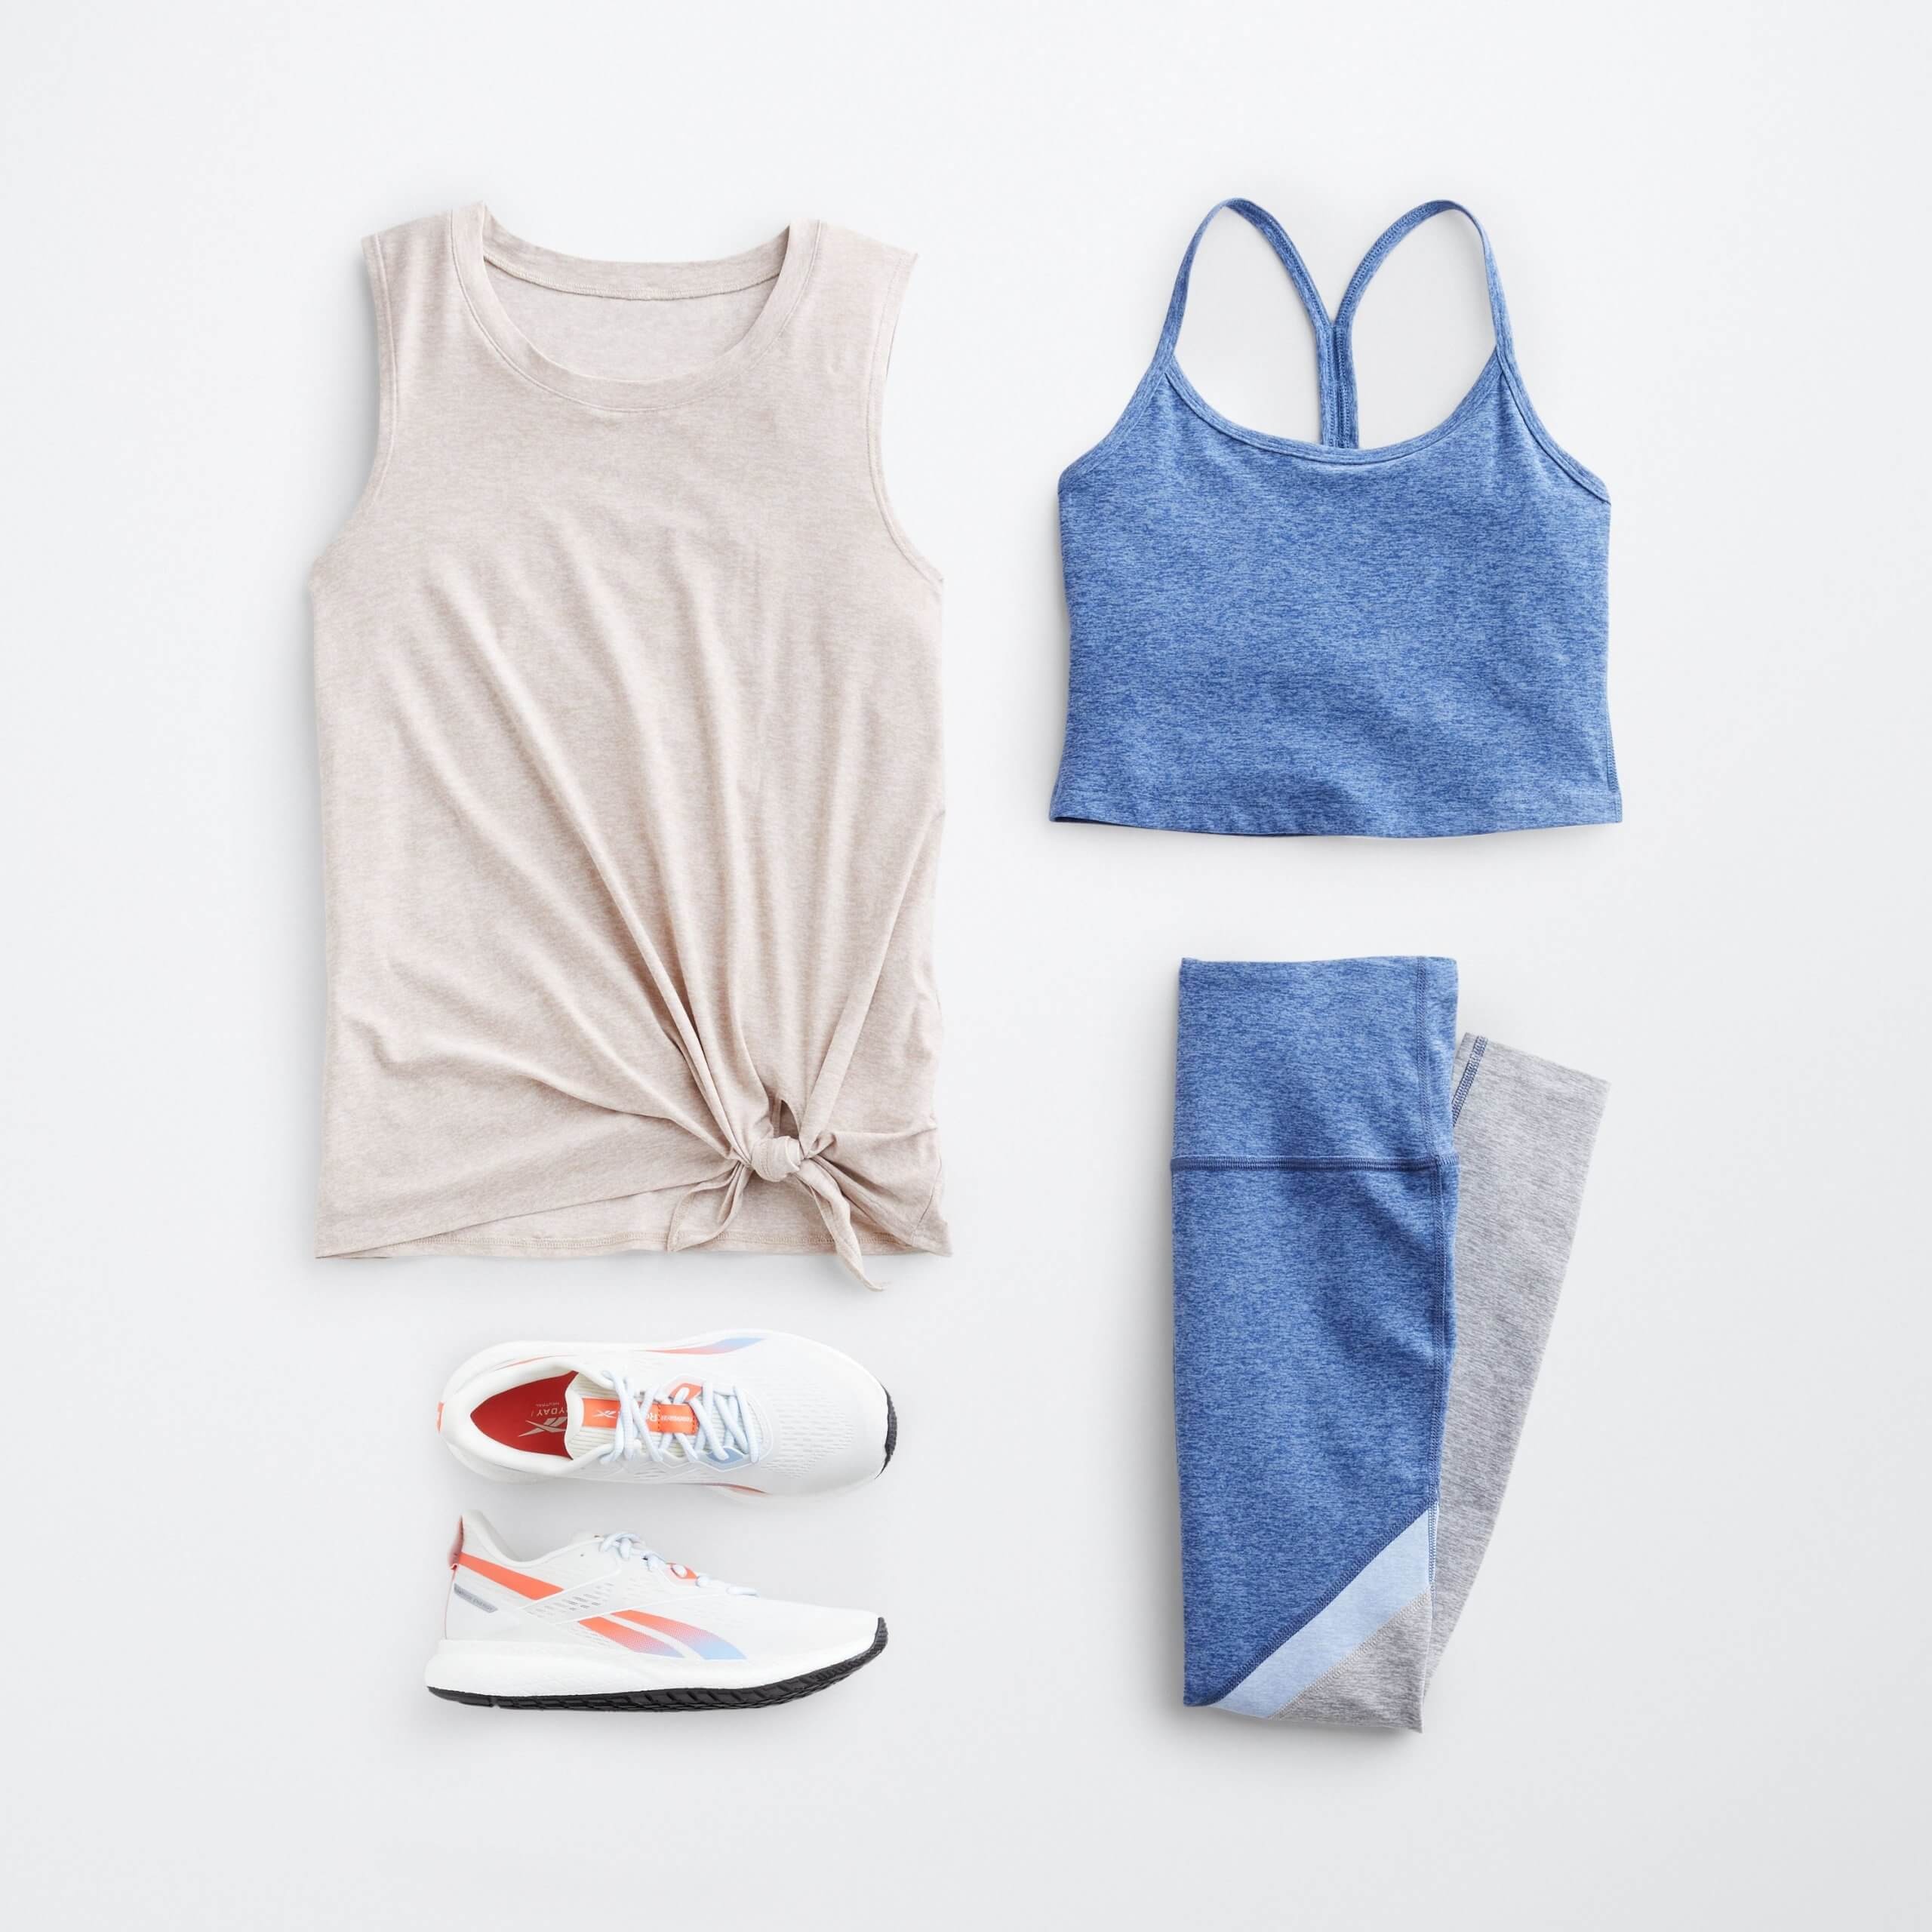 Stitch Fix Women's outfit laydown of off-white tank-top with tie front, blue cropped sports top, blue and grey leggings and white sneakers with orange details.